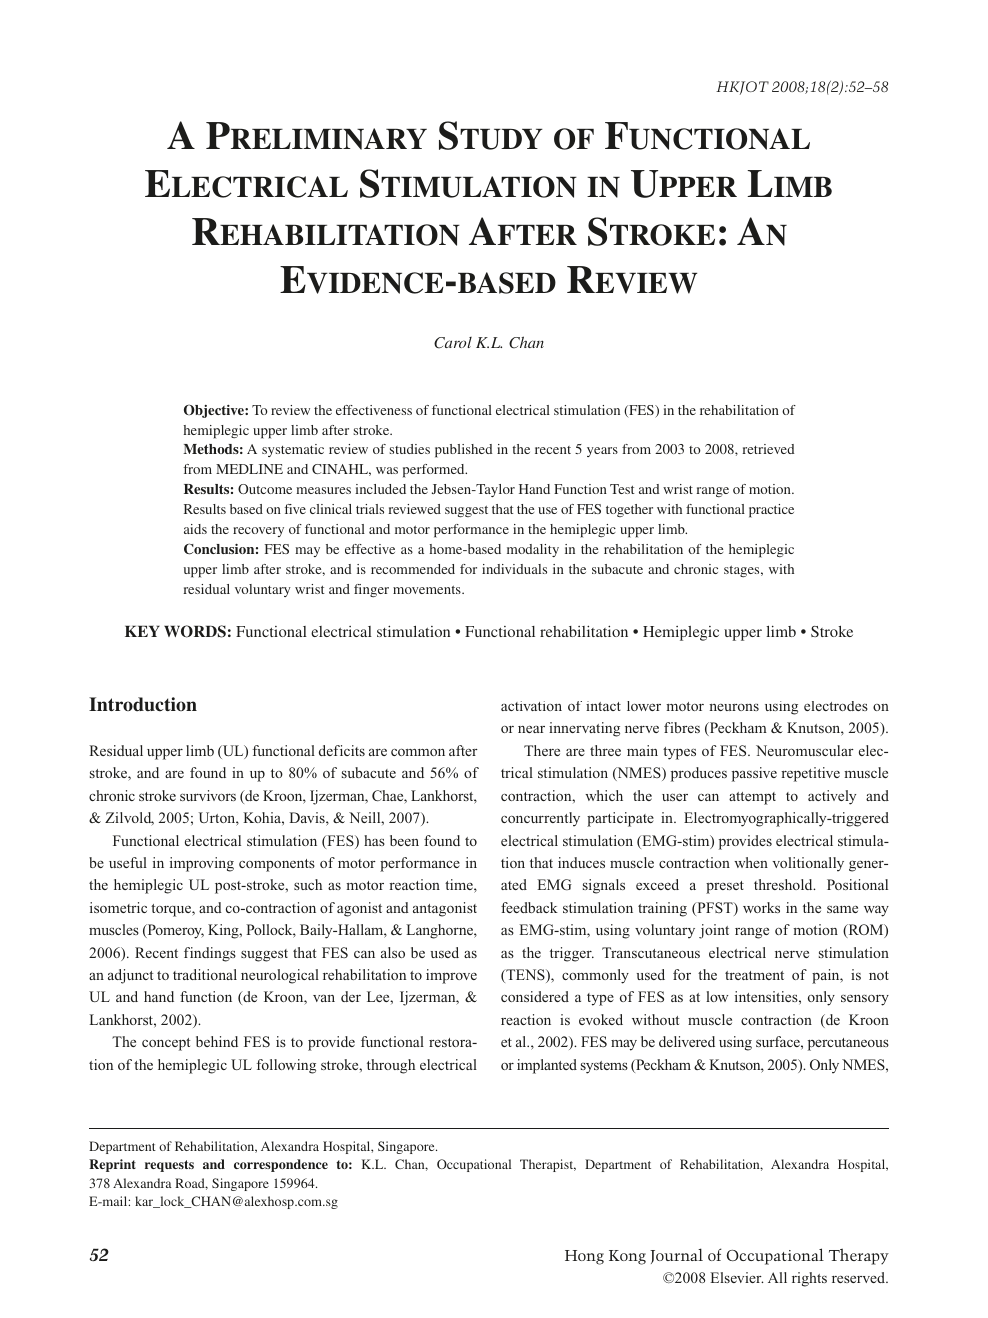 A Preliminary Study of Functional Electrical Stimulation in